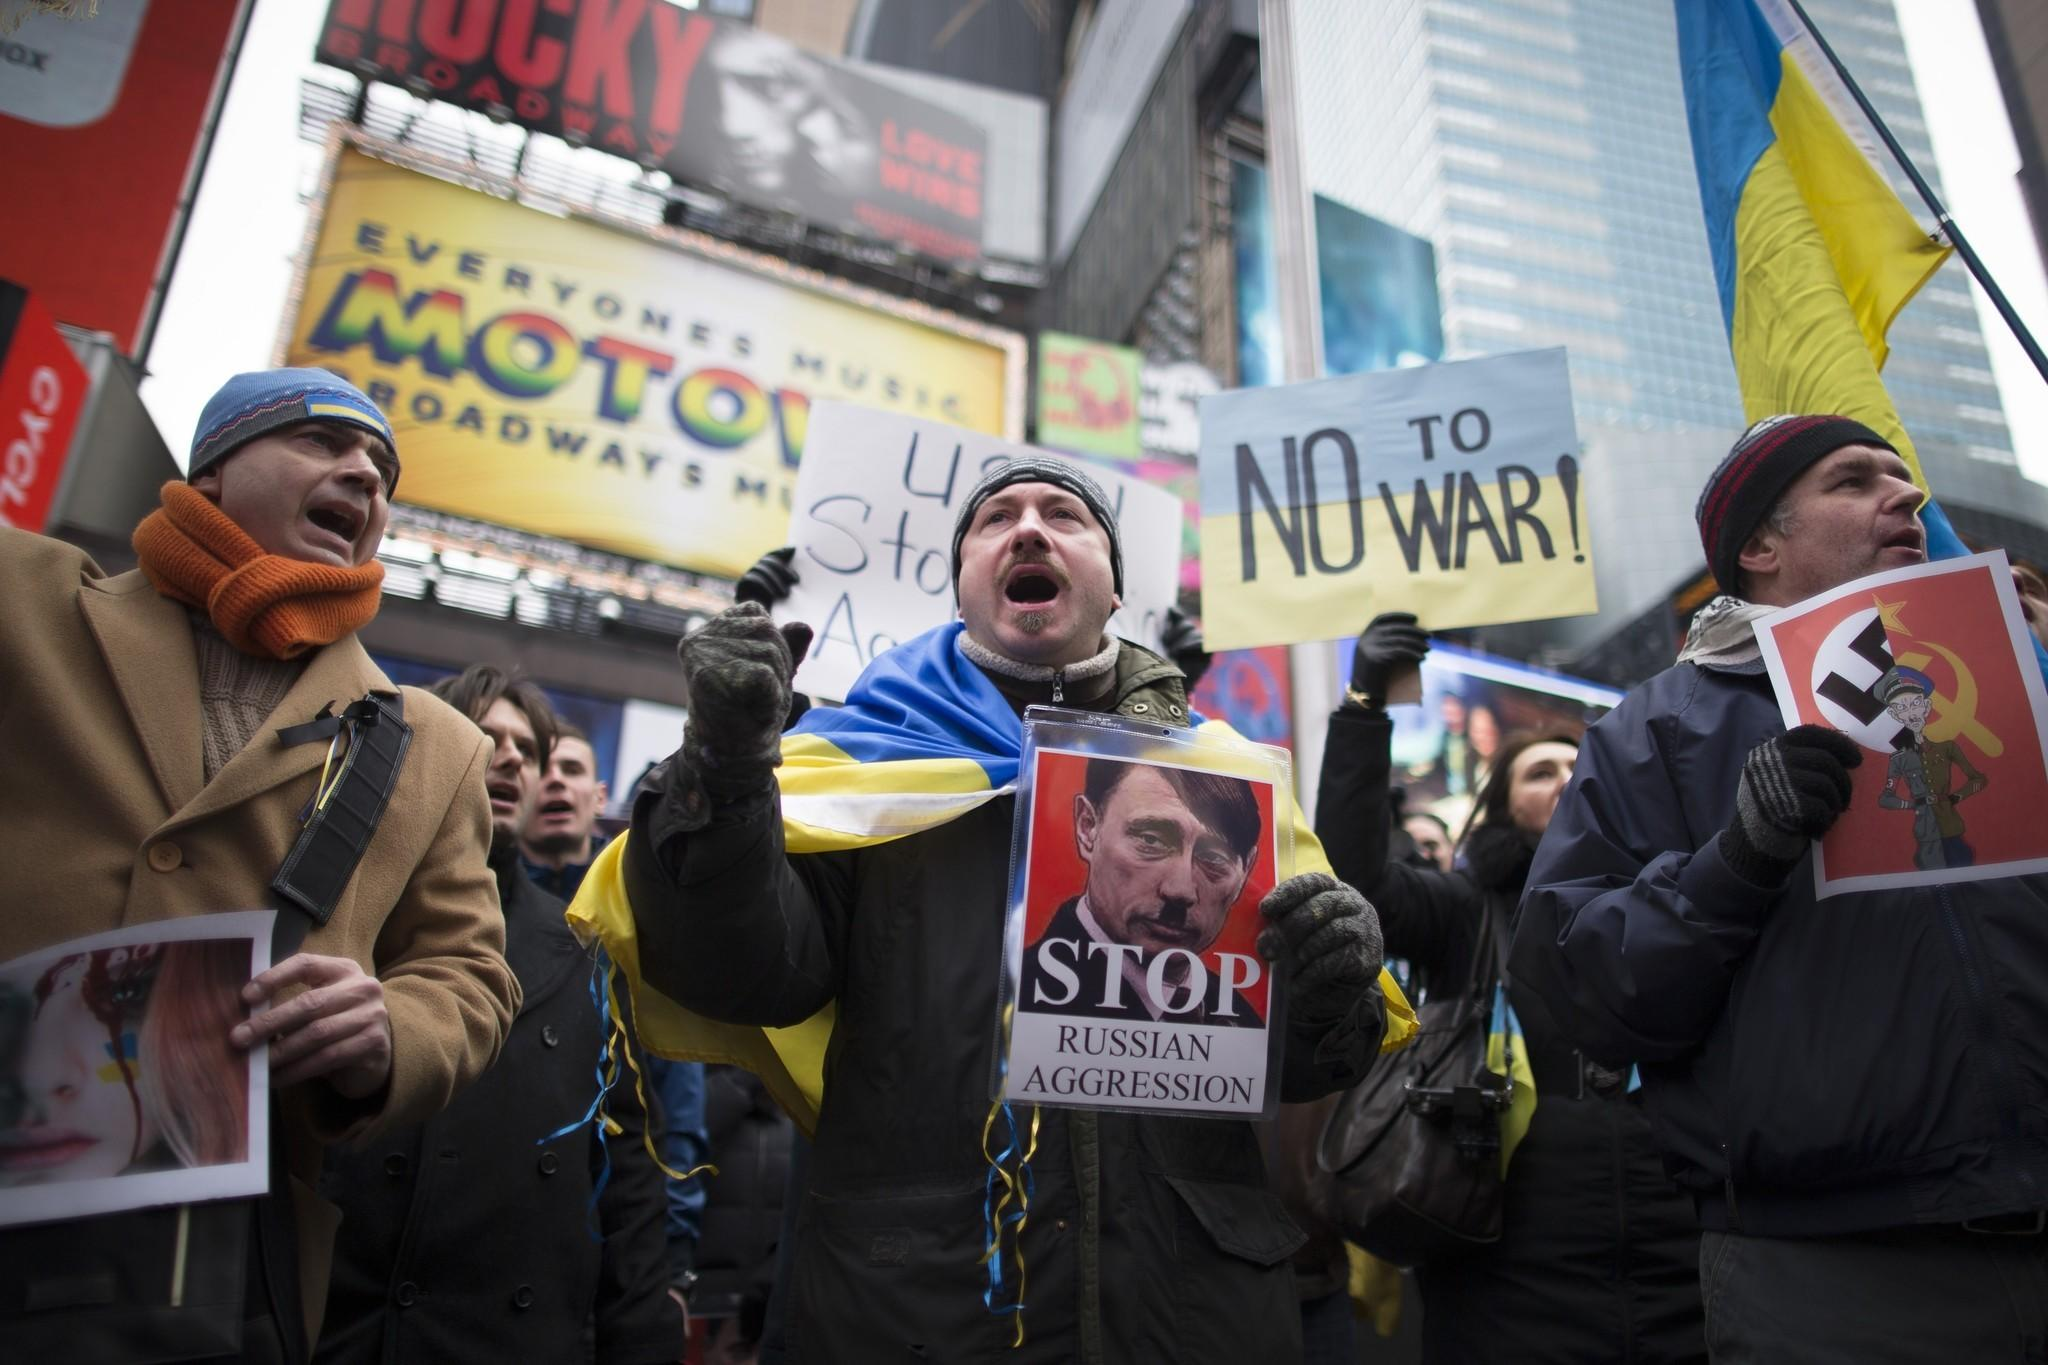 Protesters in New York's Times Square take part in a demonstration against Russian military actions in Ukraine.